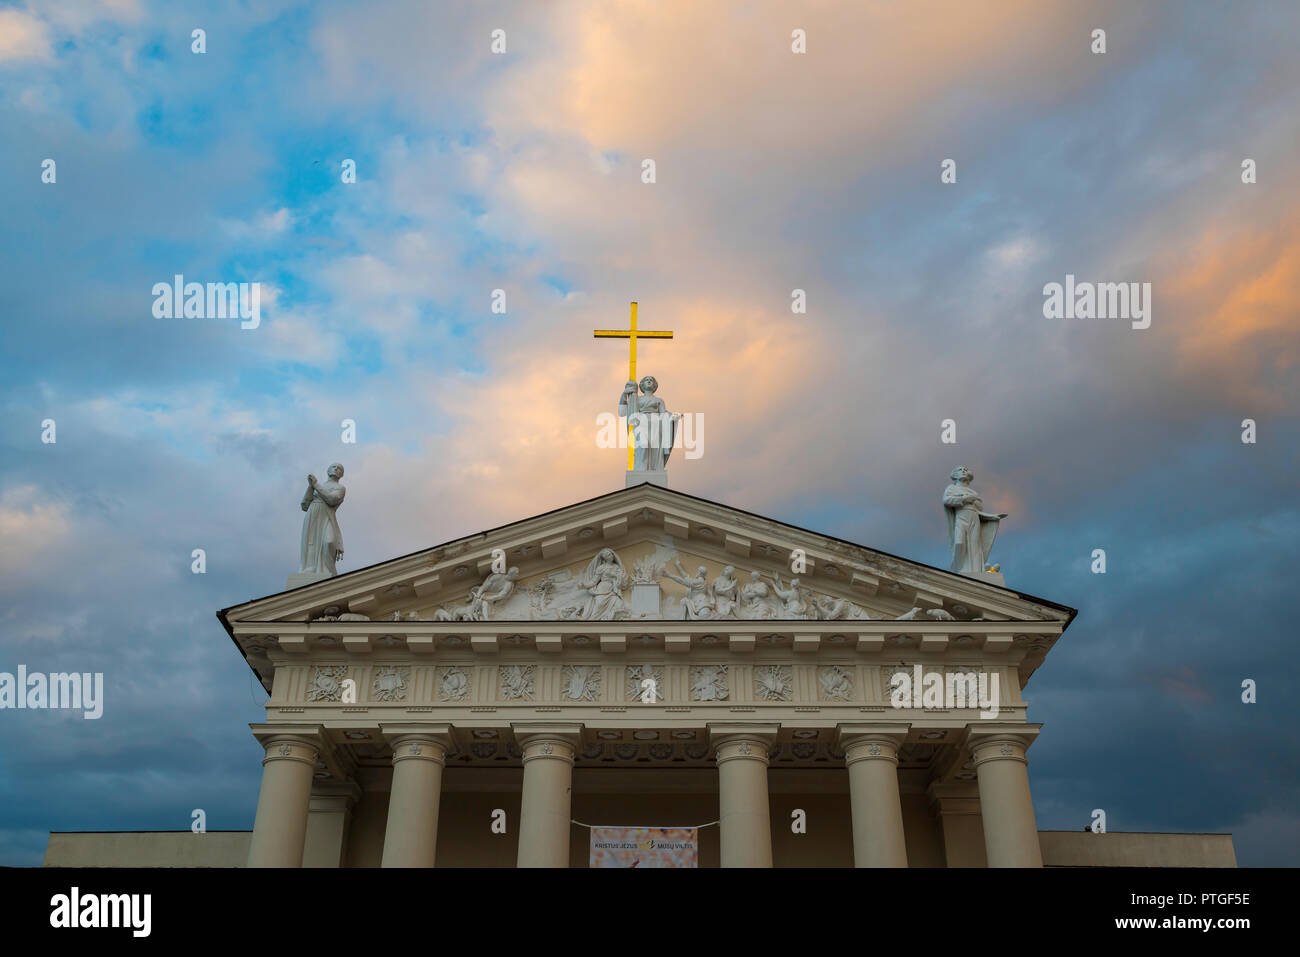 Vilnius Cathedral, view at dusk of statues sited above the neoclassical pediment of the Vilnius Cathedral of St Stanislav and St Vladislav, Lithuania. Stock Photo